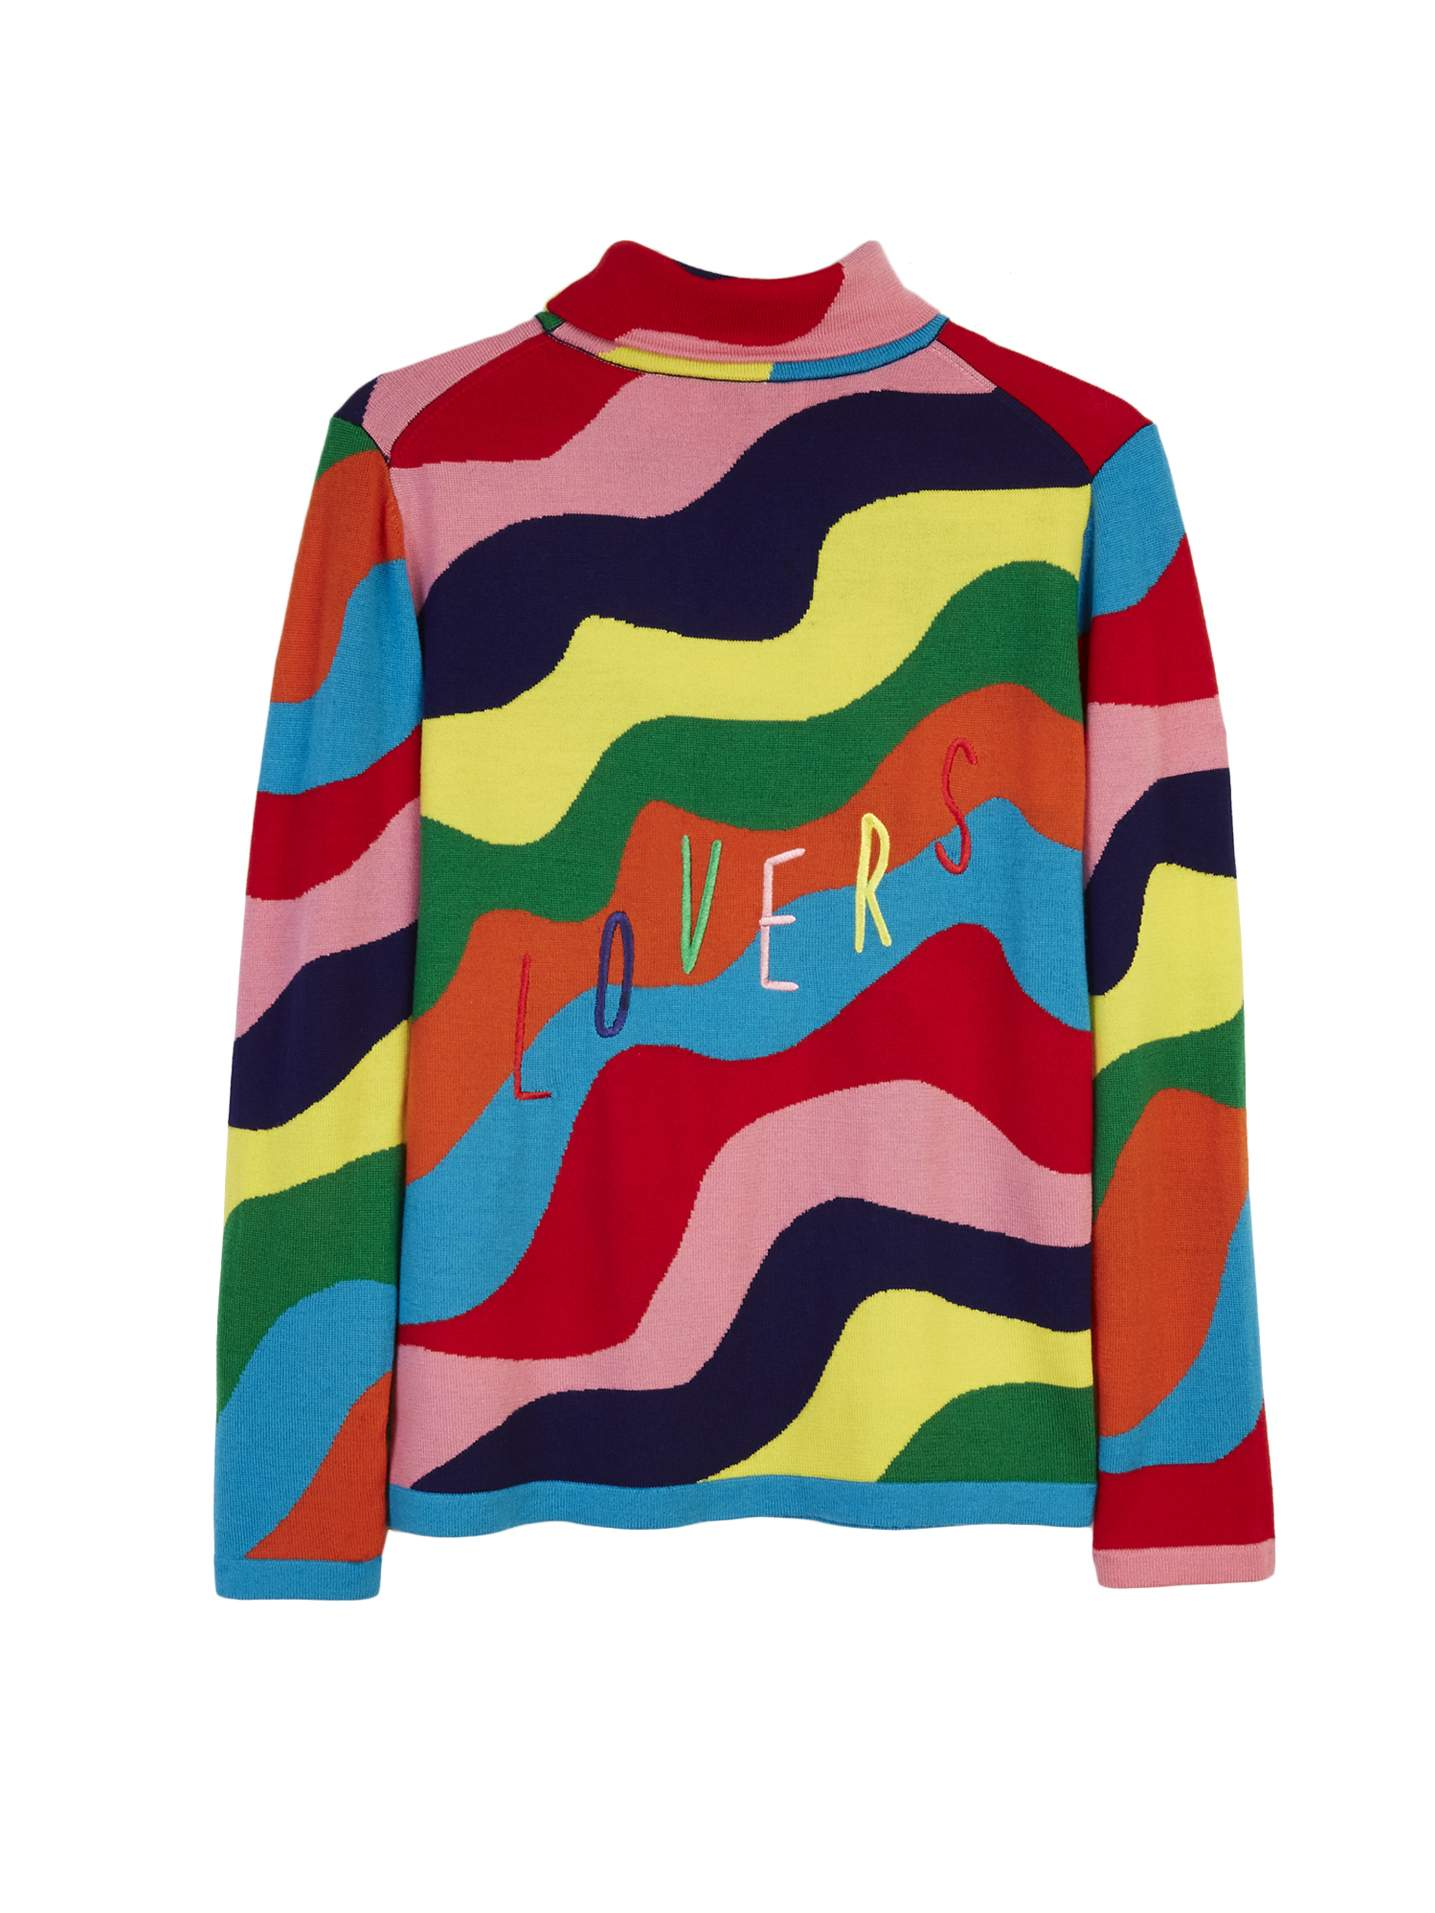 Mira Mikati at Le Mill, price on request